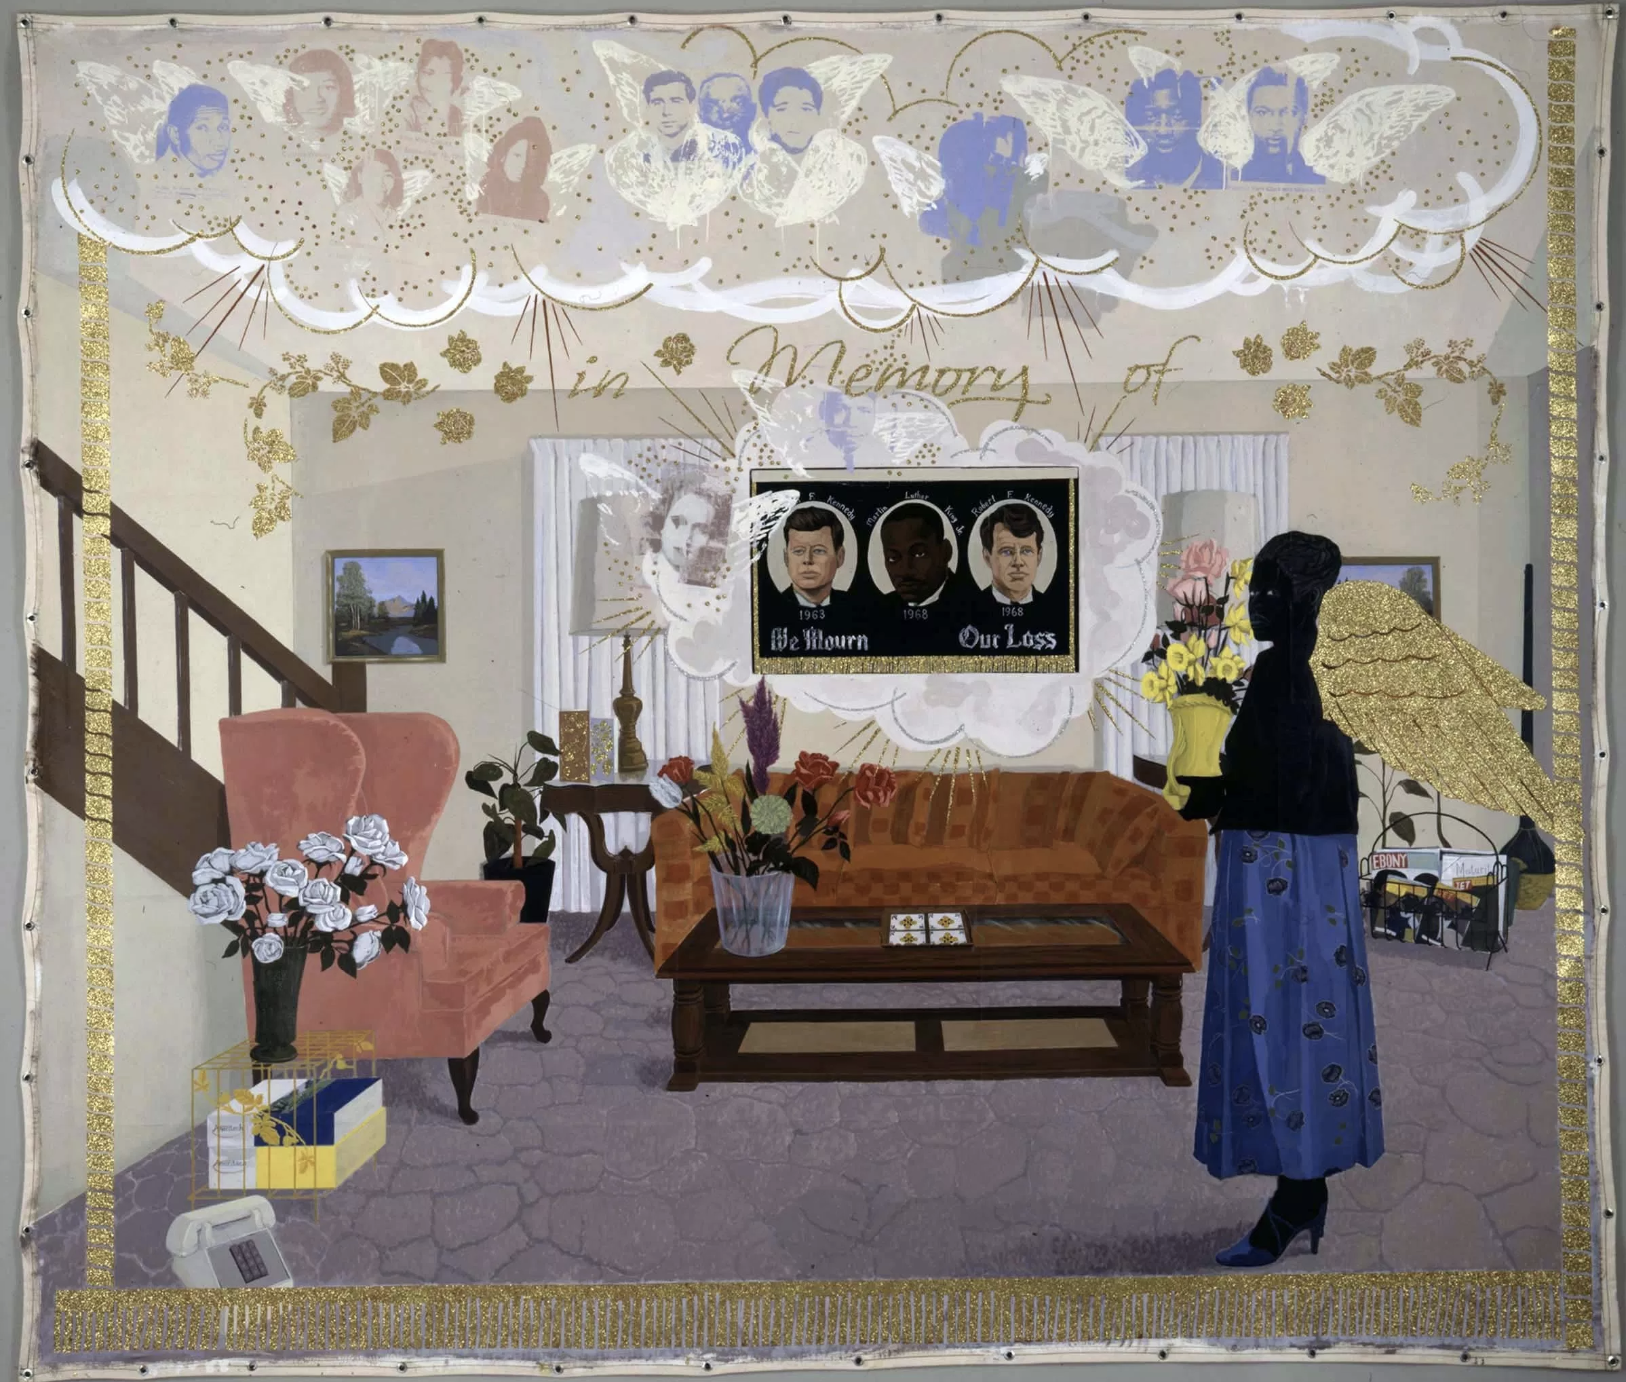 Kerry James Marshall,  Souvenir II, 1997.  Acrylic, collage, and glitter on unstretched canvas banner. Addison Gallery of American Art, Phillips Academy.